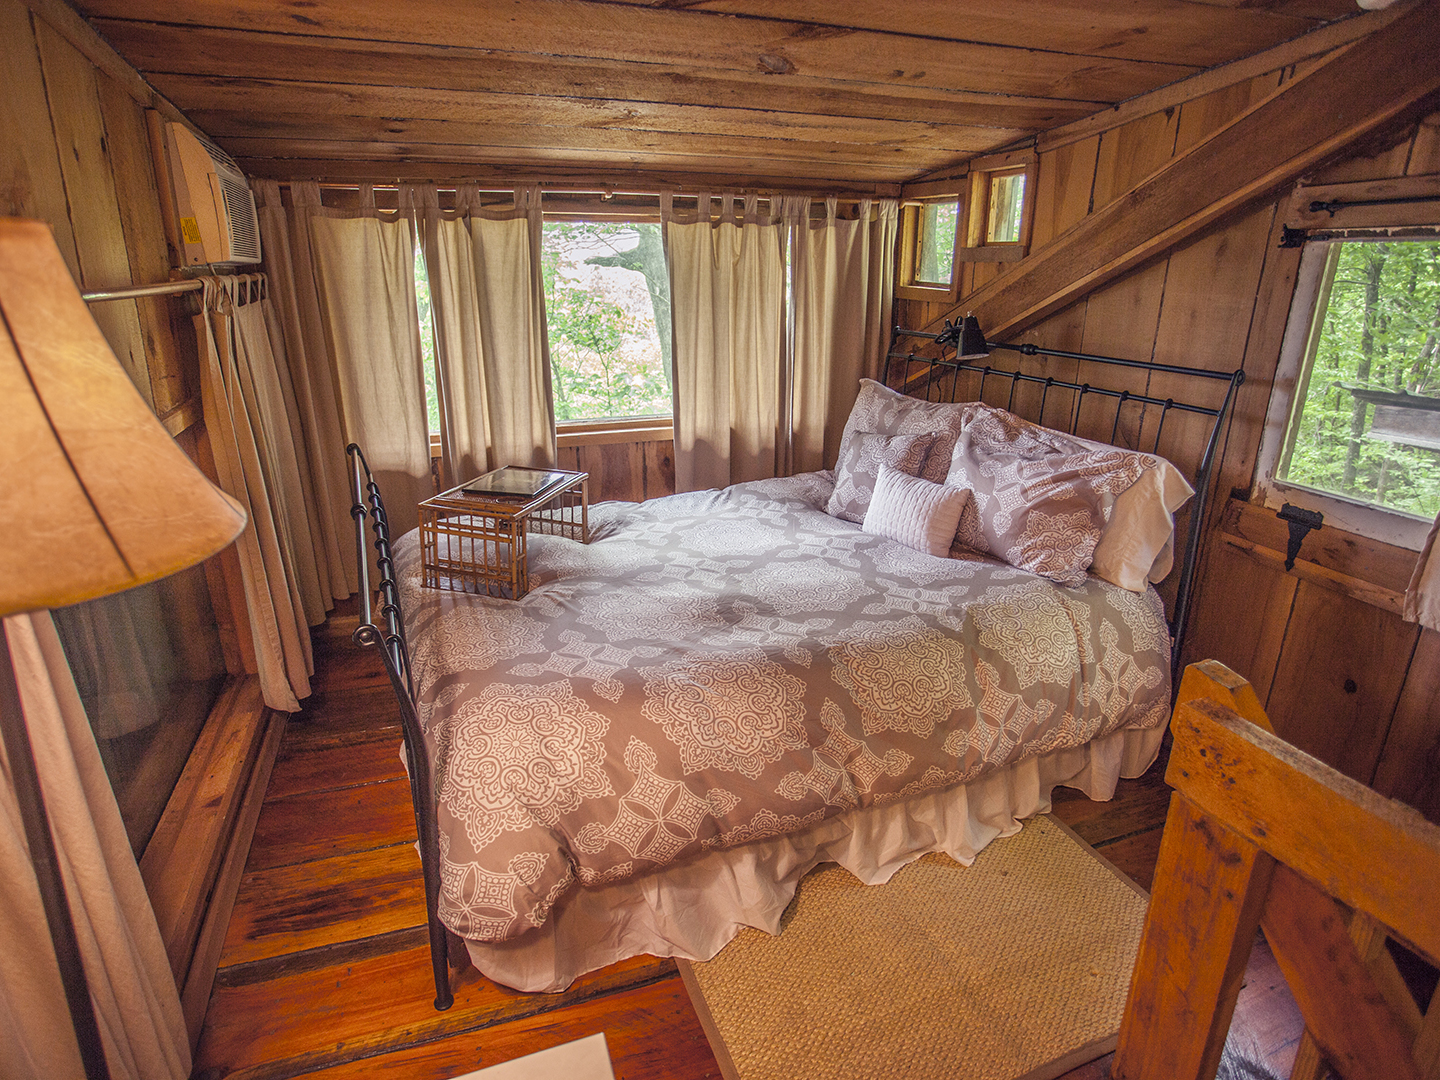 A bedroom with a bed and a chair in a room at Nolichuckey Bluffs Bed & Breakfast Cabins.